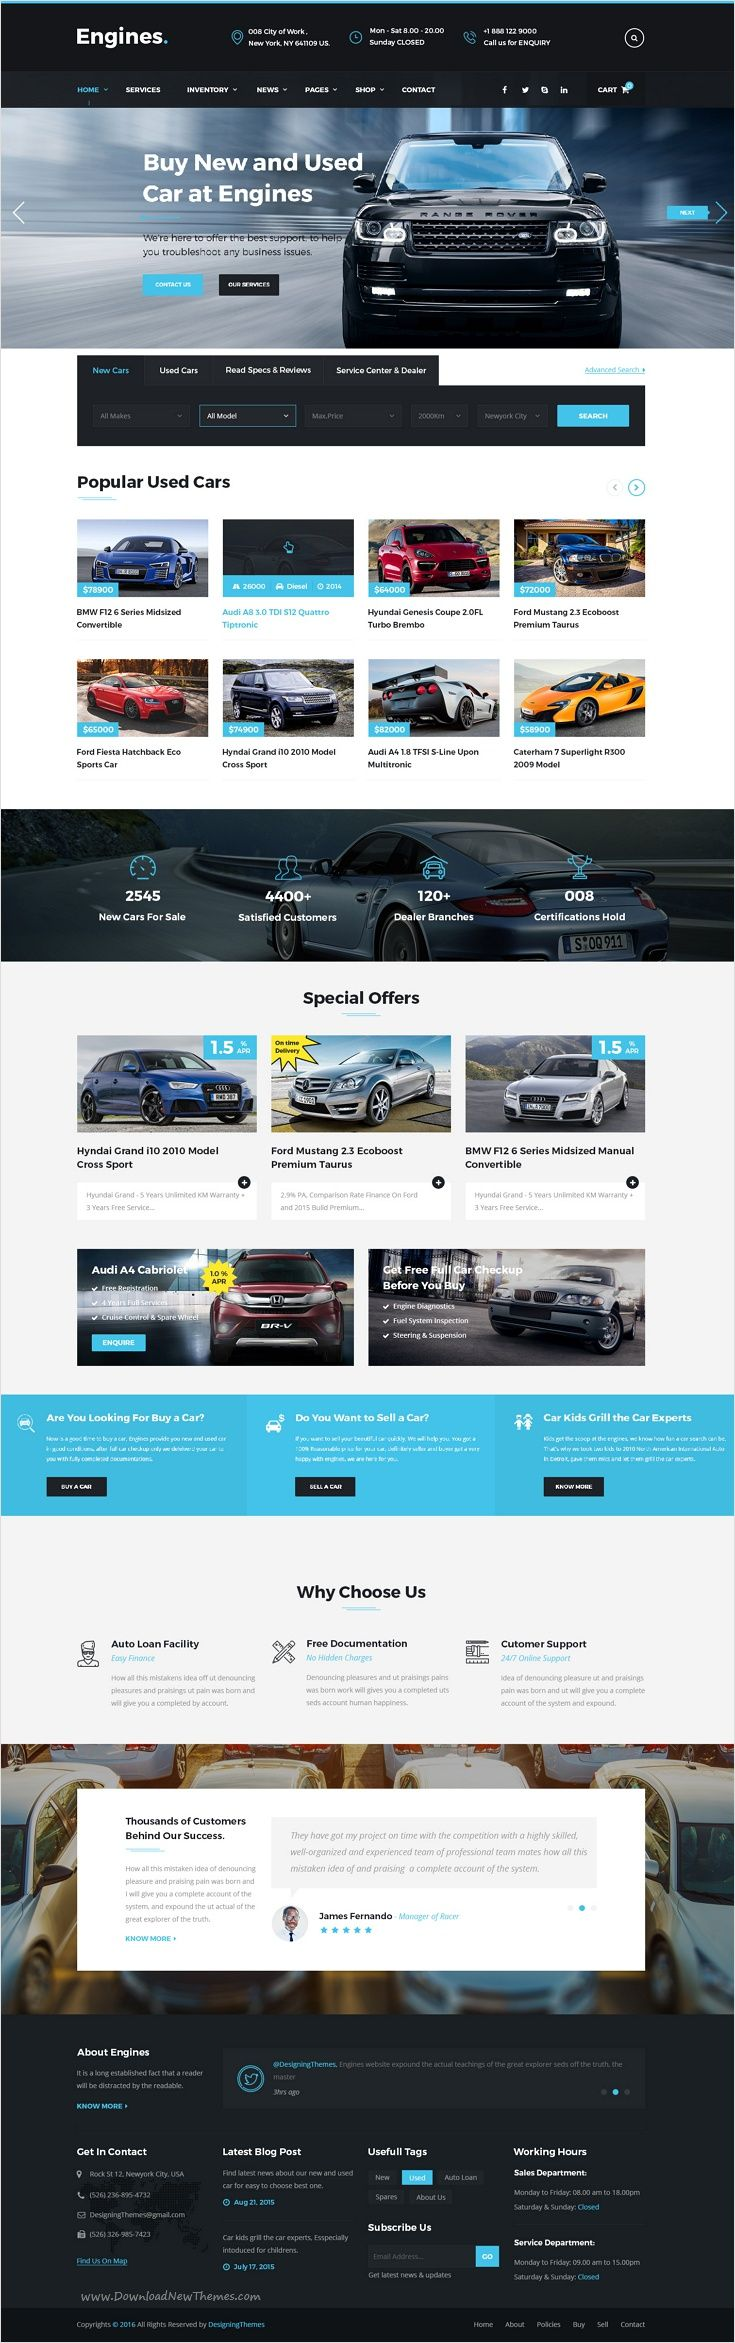 124 best Car/Bike website/apps images on Pinterest